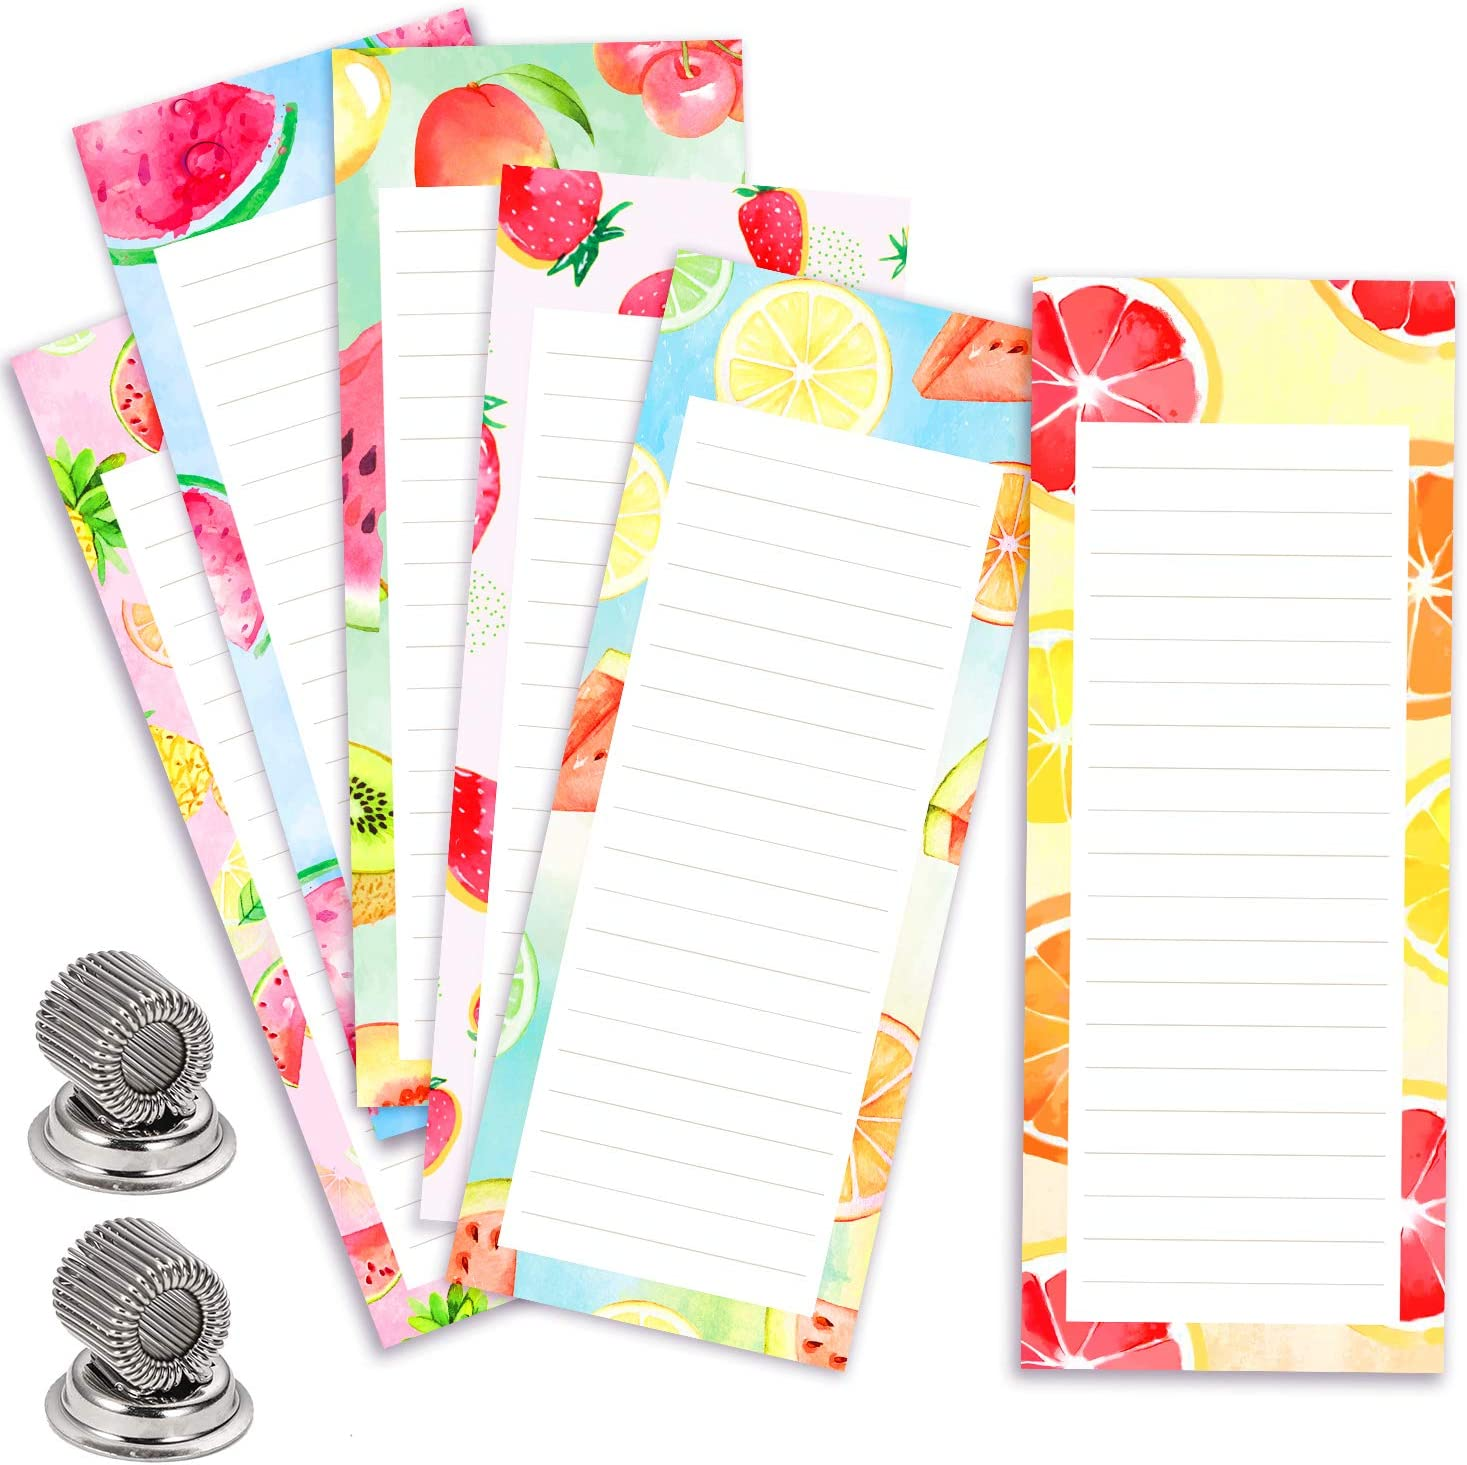 """6 Pack Magnetic Notepad for Fridge with 2 Magnetic Pen Holder, 6 Colorful Fruit Designs to Do List Notepad for Grocery Shopping Lists, Reminders, Schedules, 60 Sheets/Pad, 3.1""""x 8.3"""""""